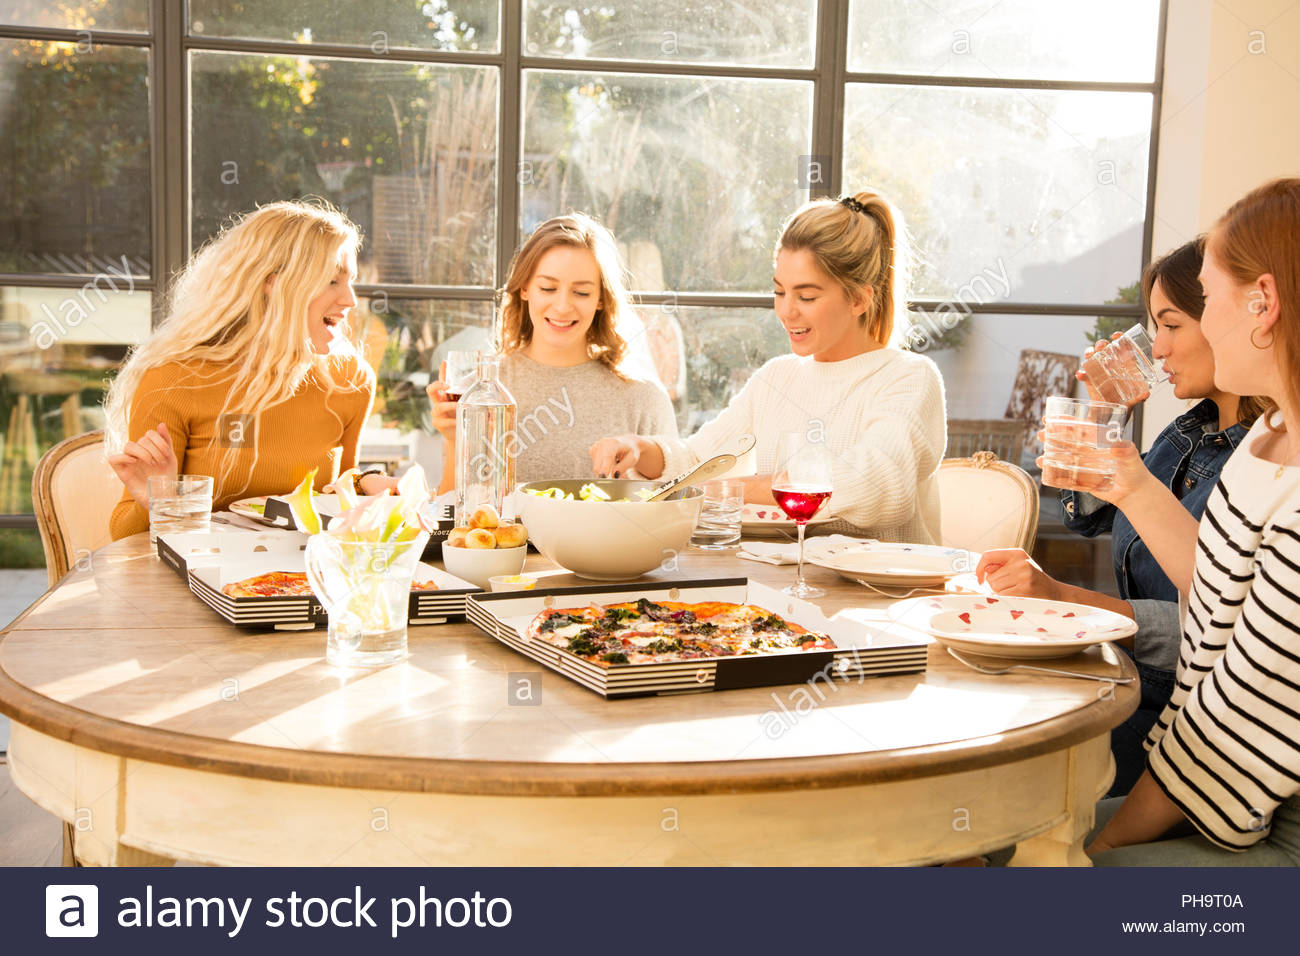 Young women eating pizza together - Stock Image